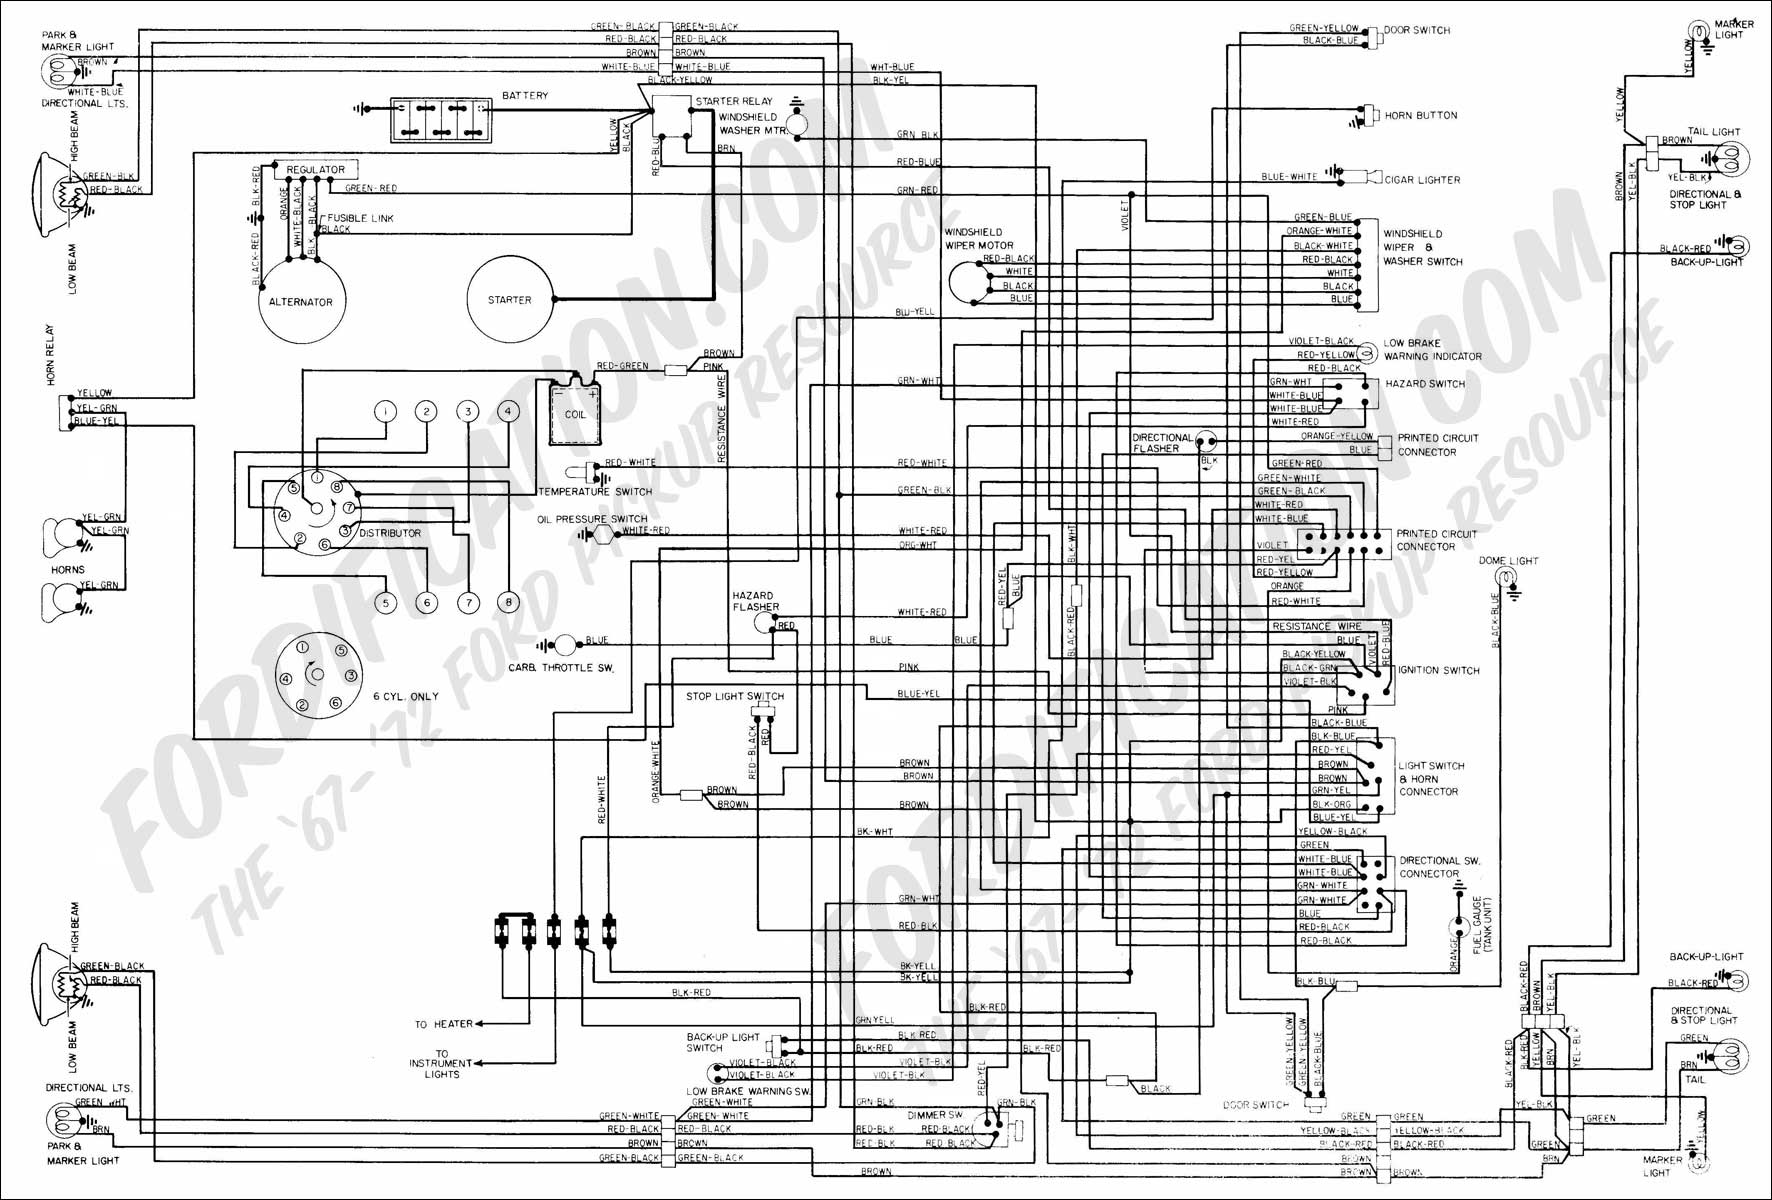 1972 ranchero wiring diagram wiring diagrams best fusion wiring diagram ford fusion wiring diagram image wiring ford 1959 ranchero 1972 ranchero wiring diagram